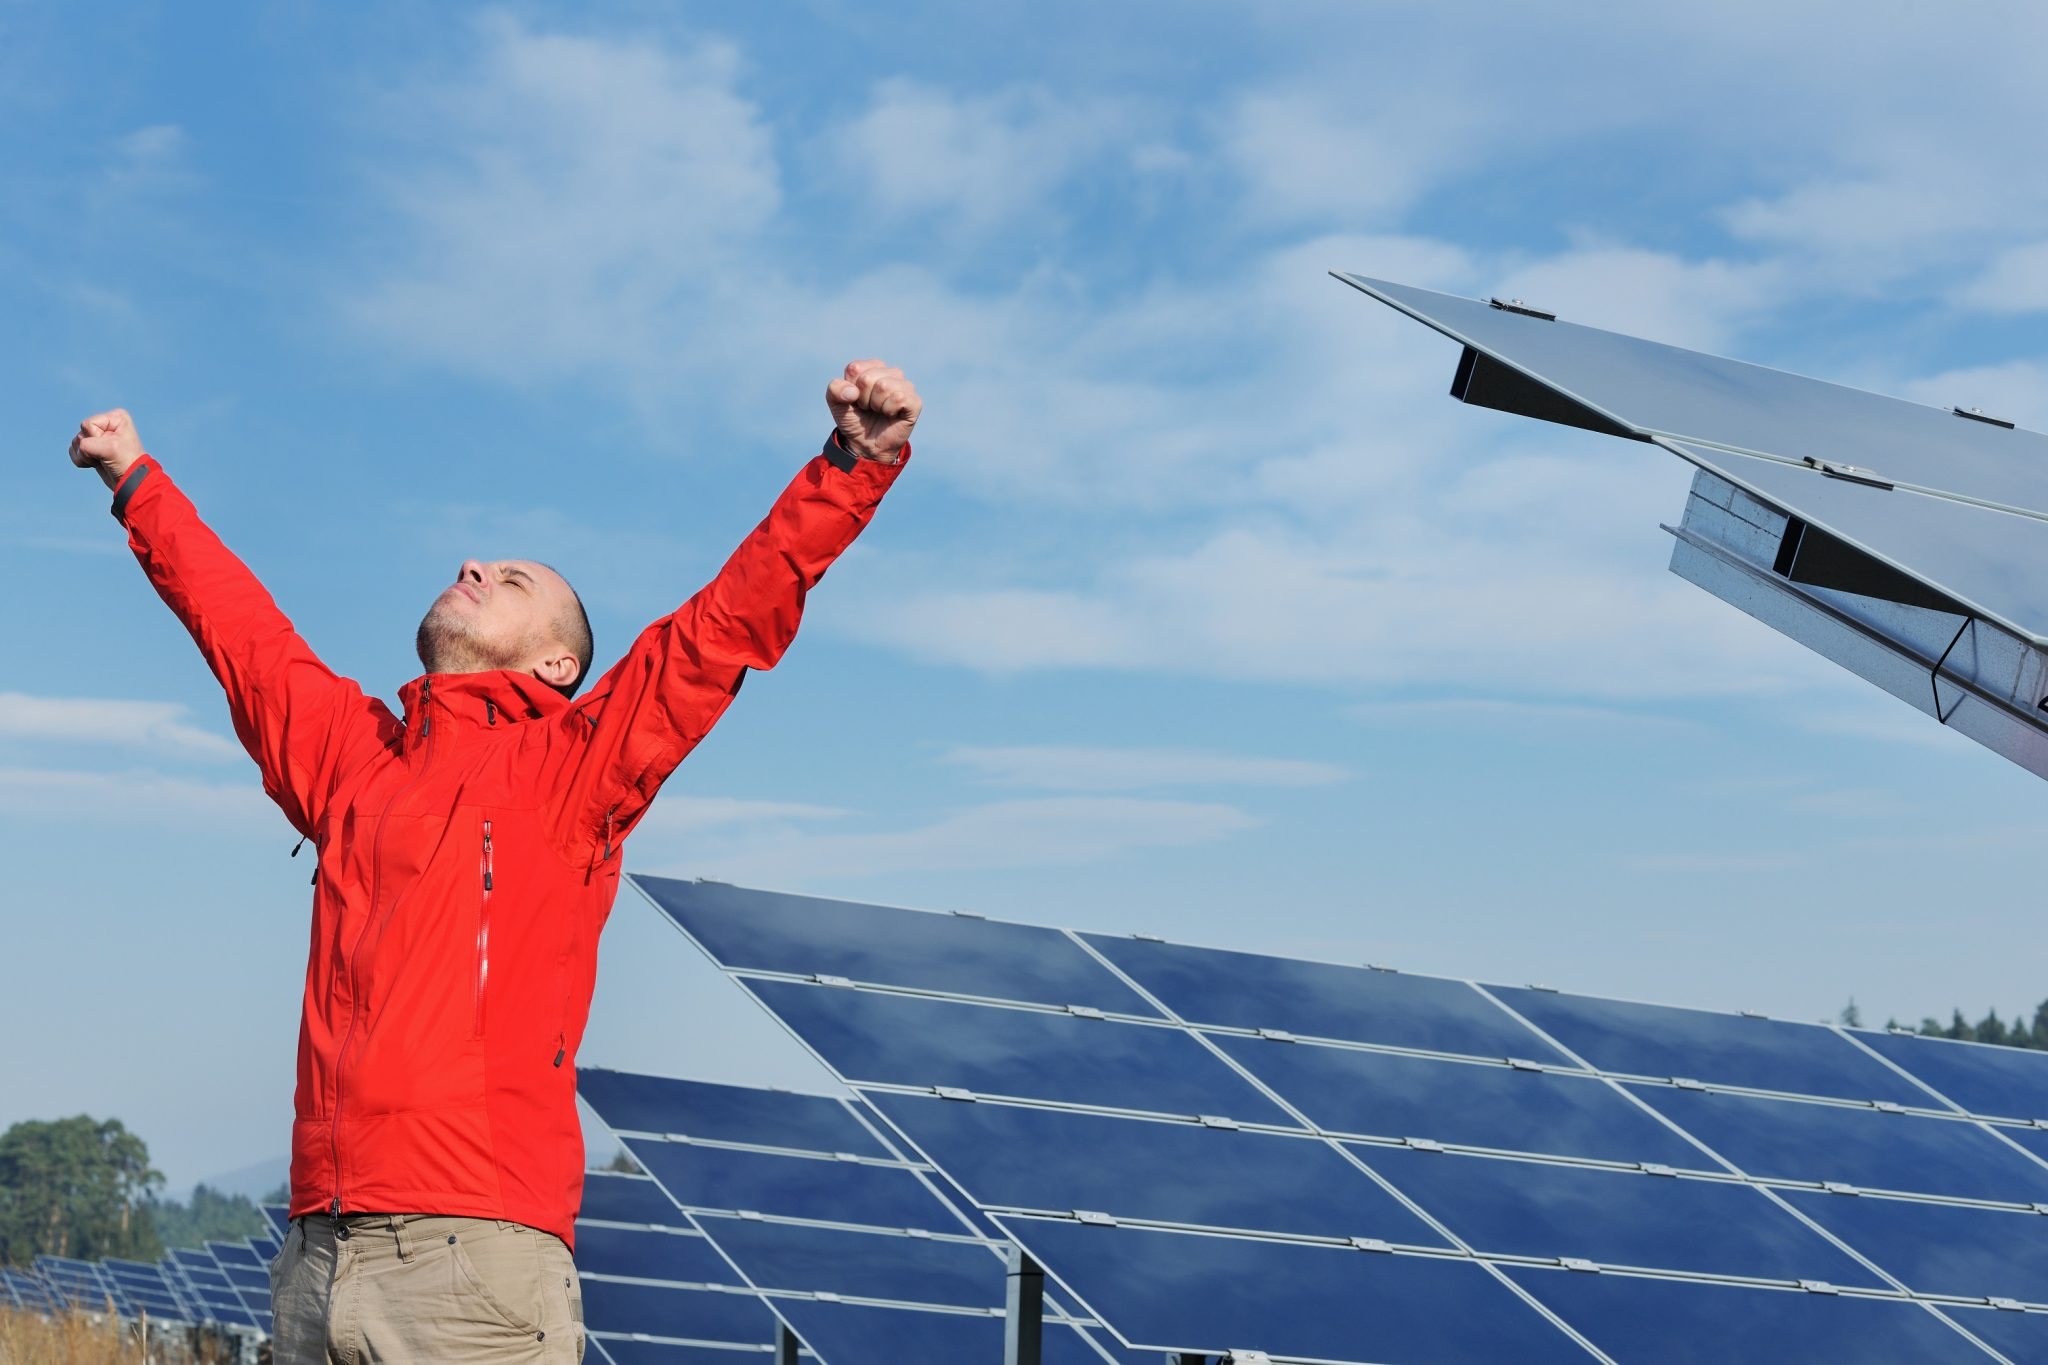 Our energy management consultants can give you advice on rooftop solar